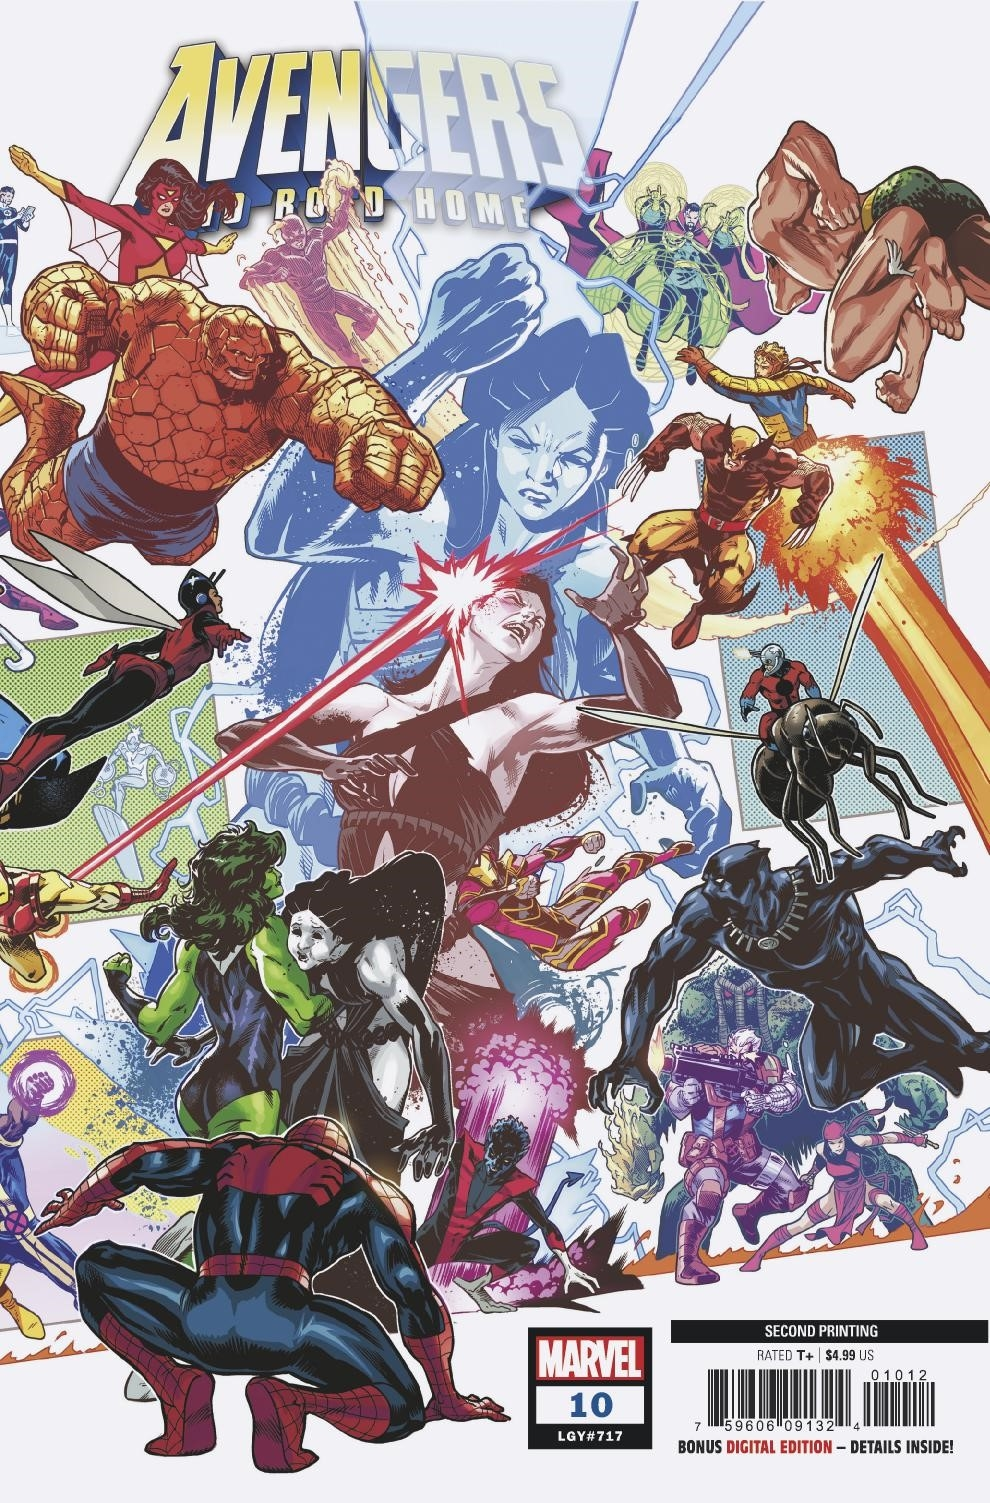 AVENGERS NO ROAD HOME #10 (OF 10) 2ND PTG IZAAKSE VAR